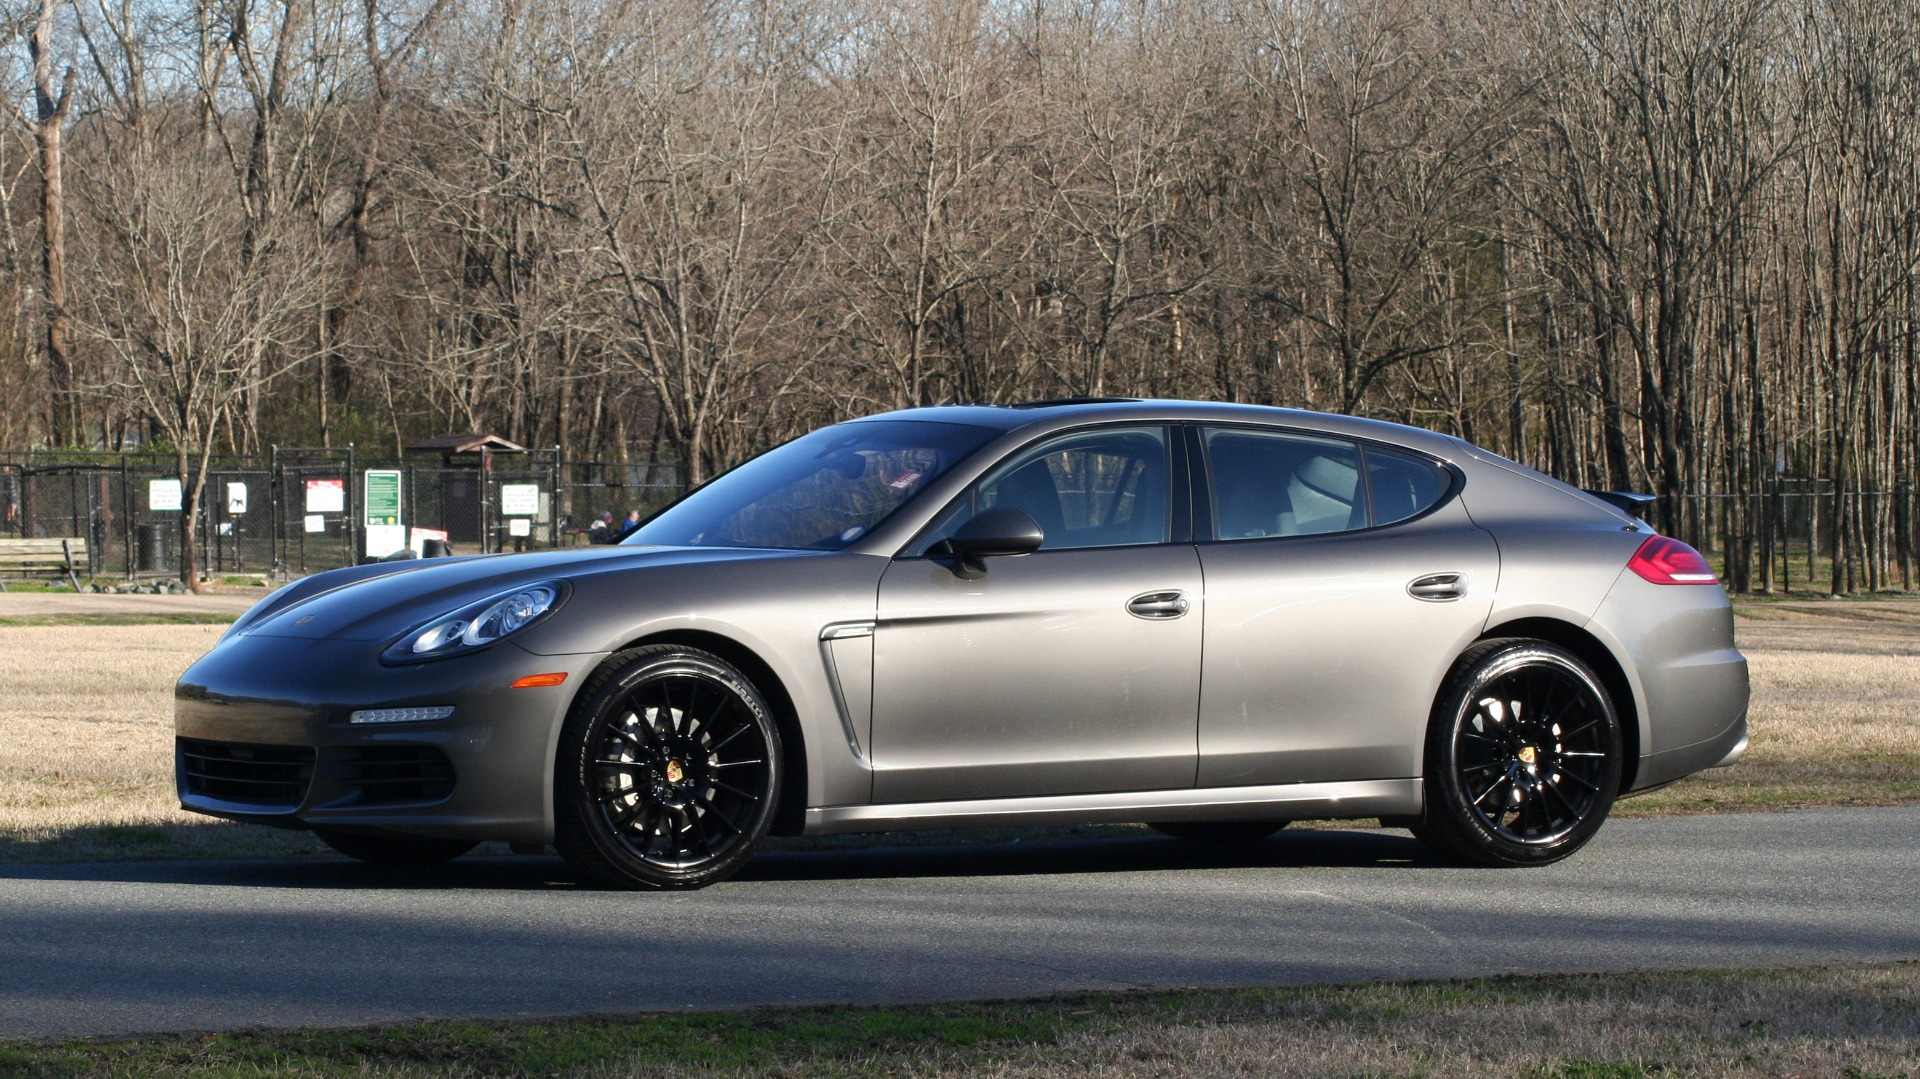 Used 2016 Porsche PANAMERA S / TURBO V6 / PDK / NAV / BOSE / SNRF / LDW / REARVIEW for sale Sold at Formula Imports in Charlotte NC 28227 3